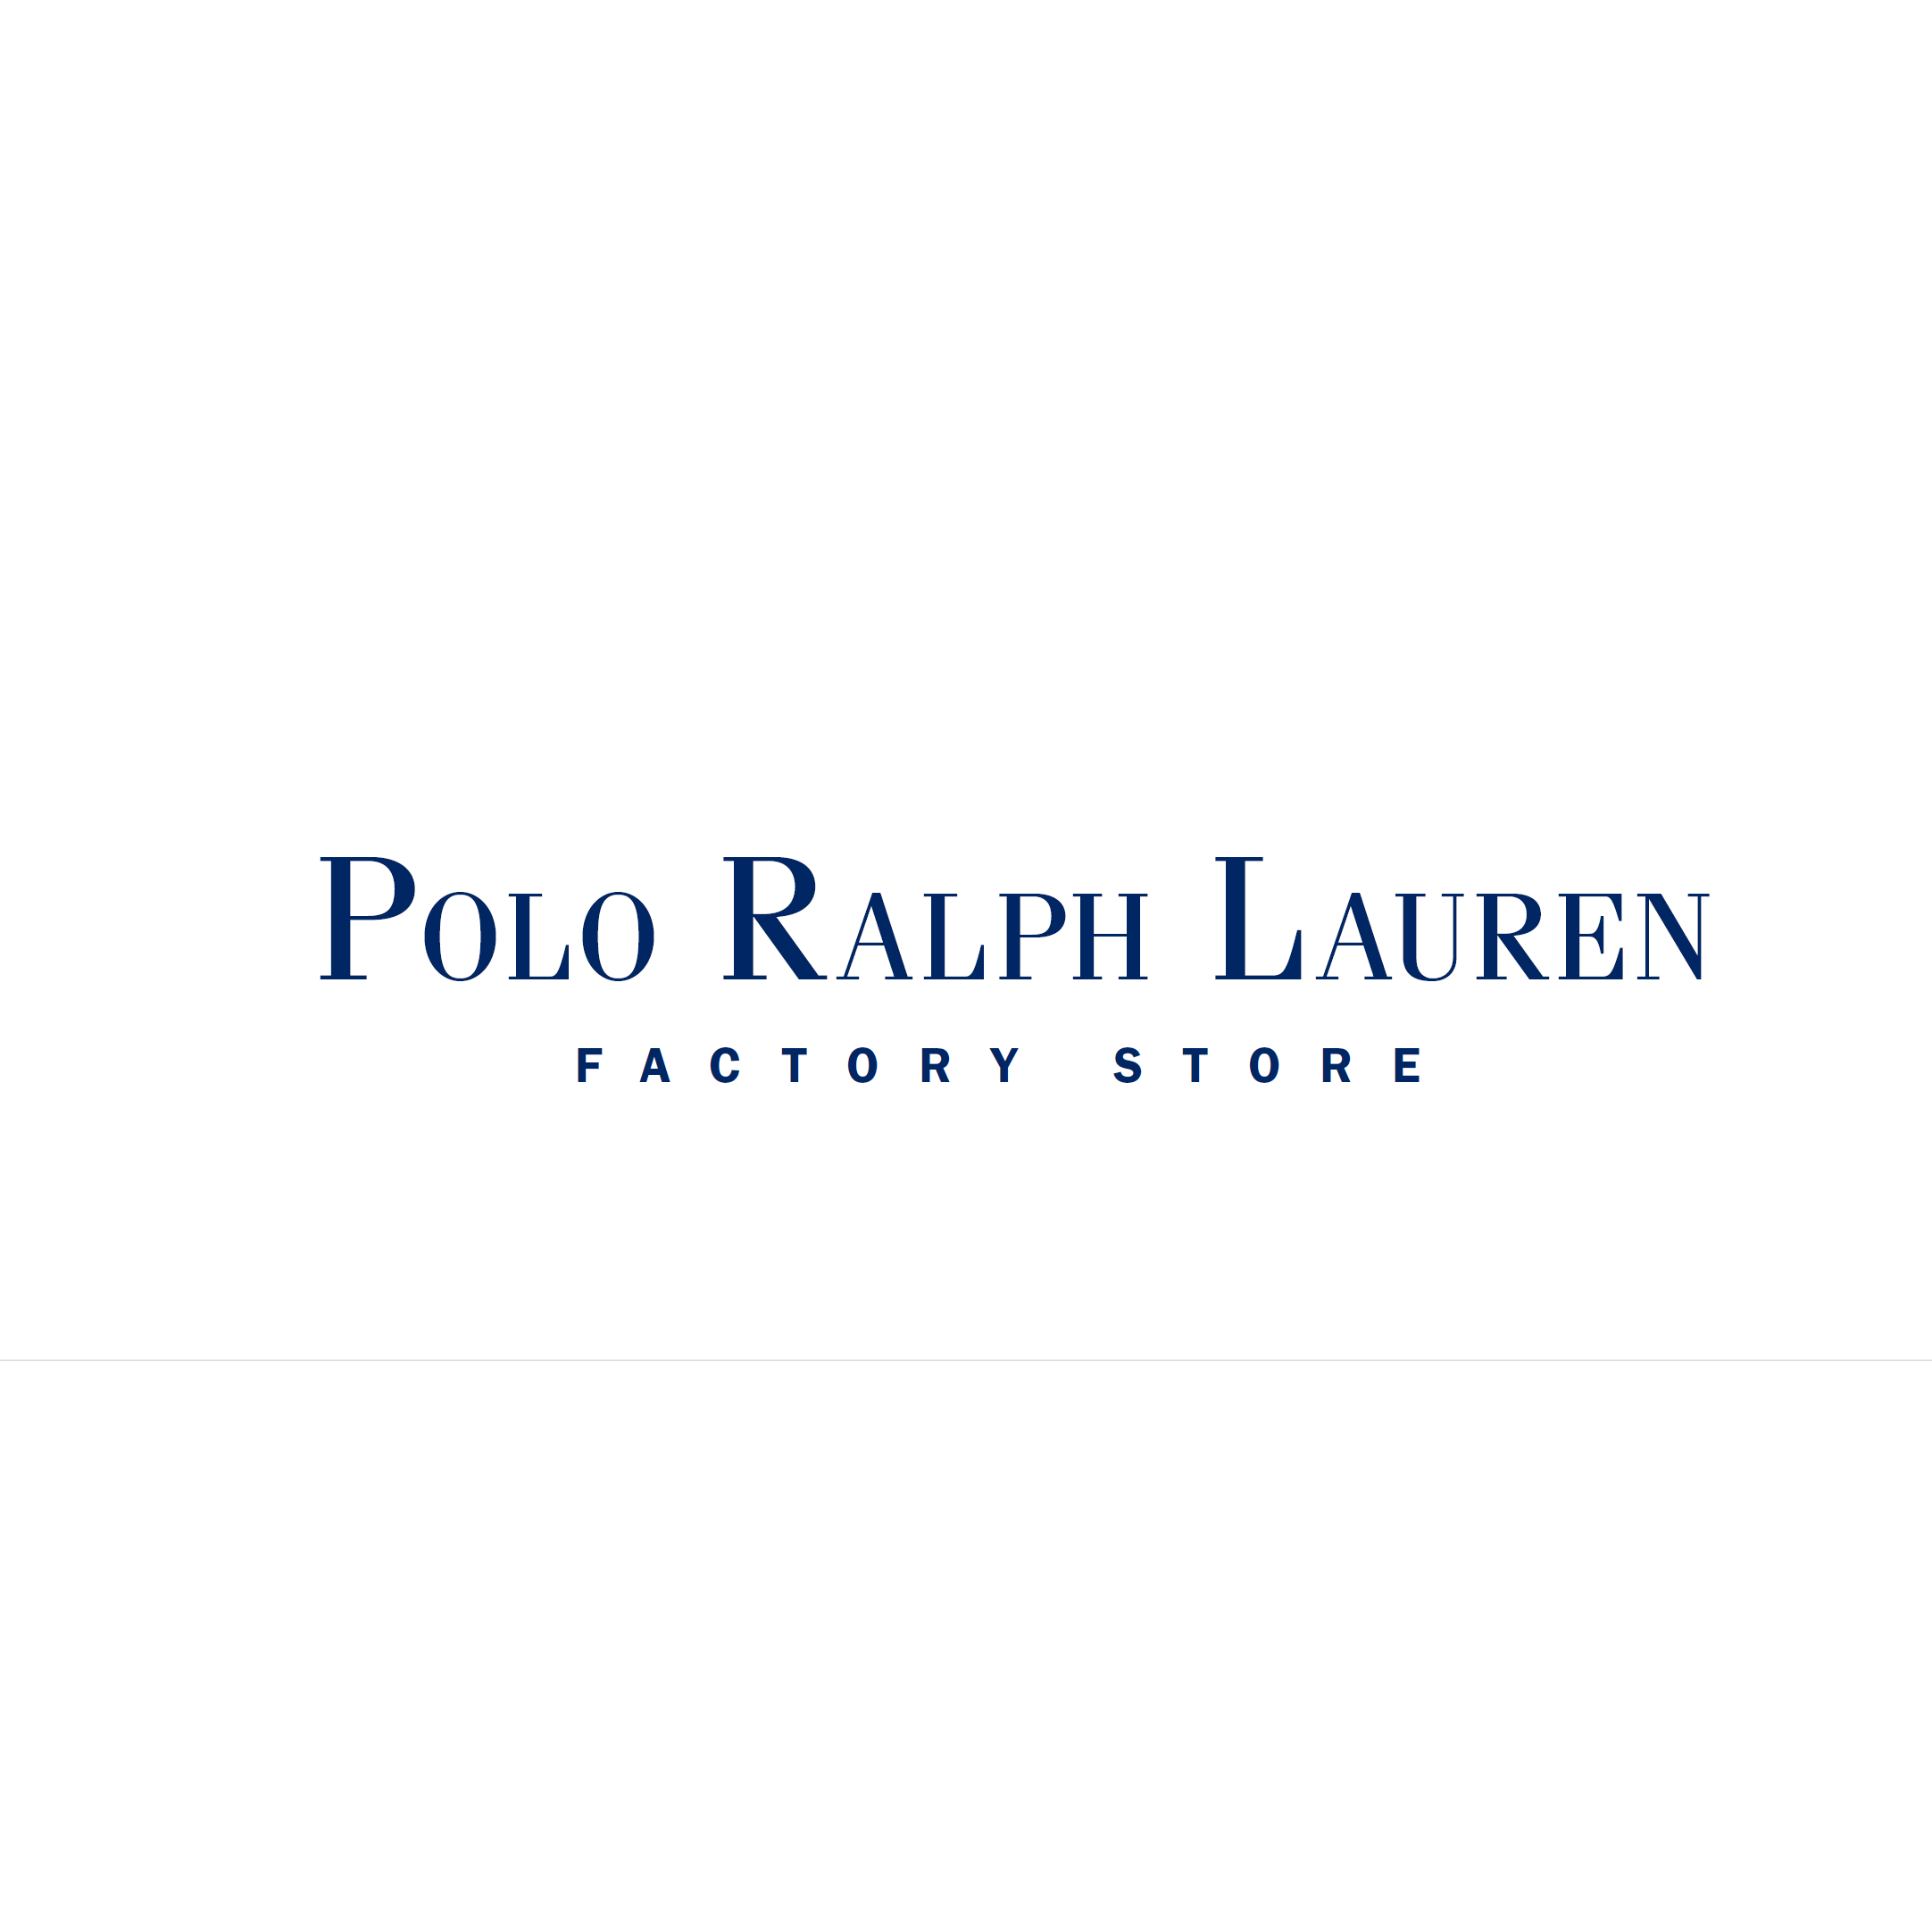 Polo Ralph Lauren Factory Store